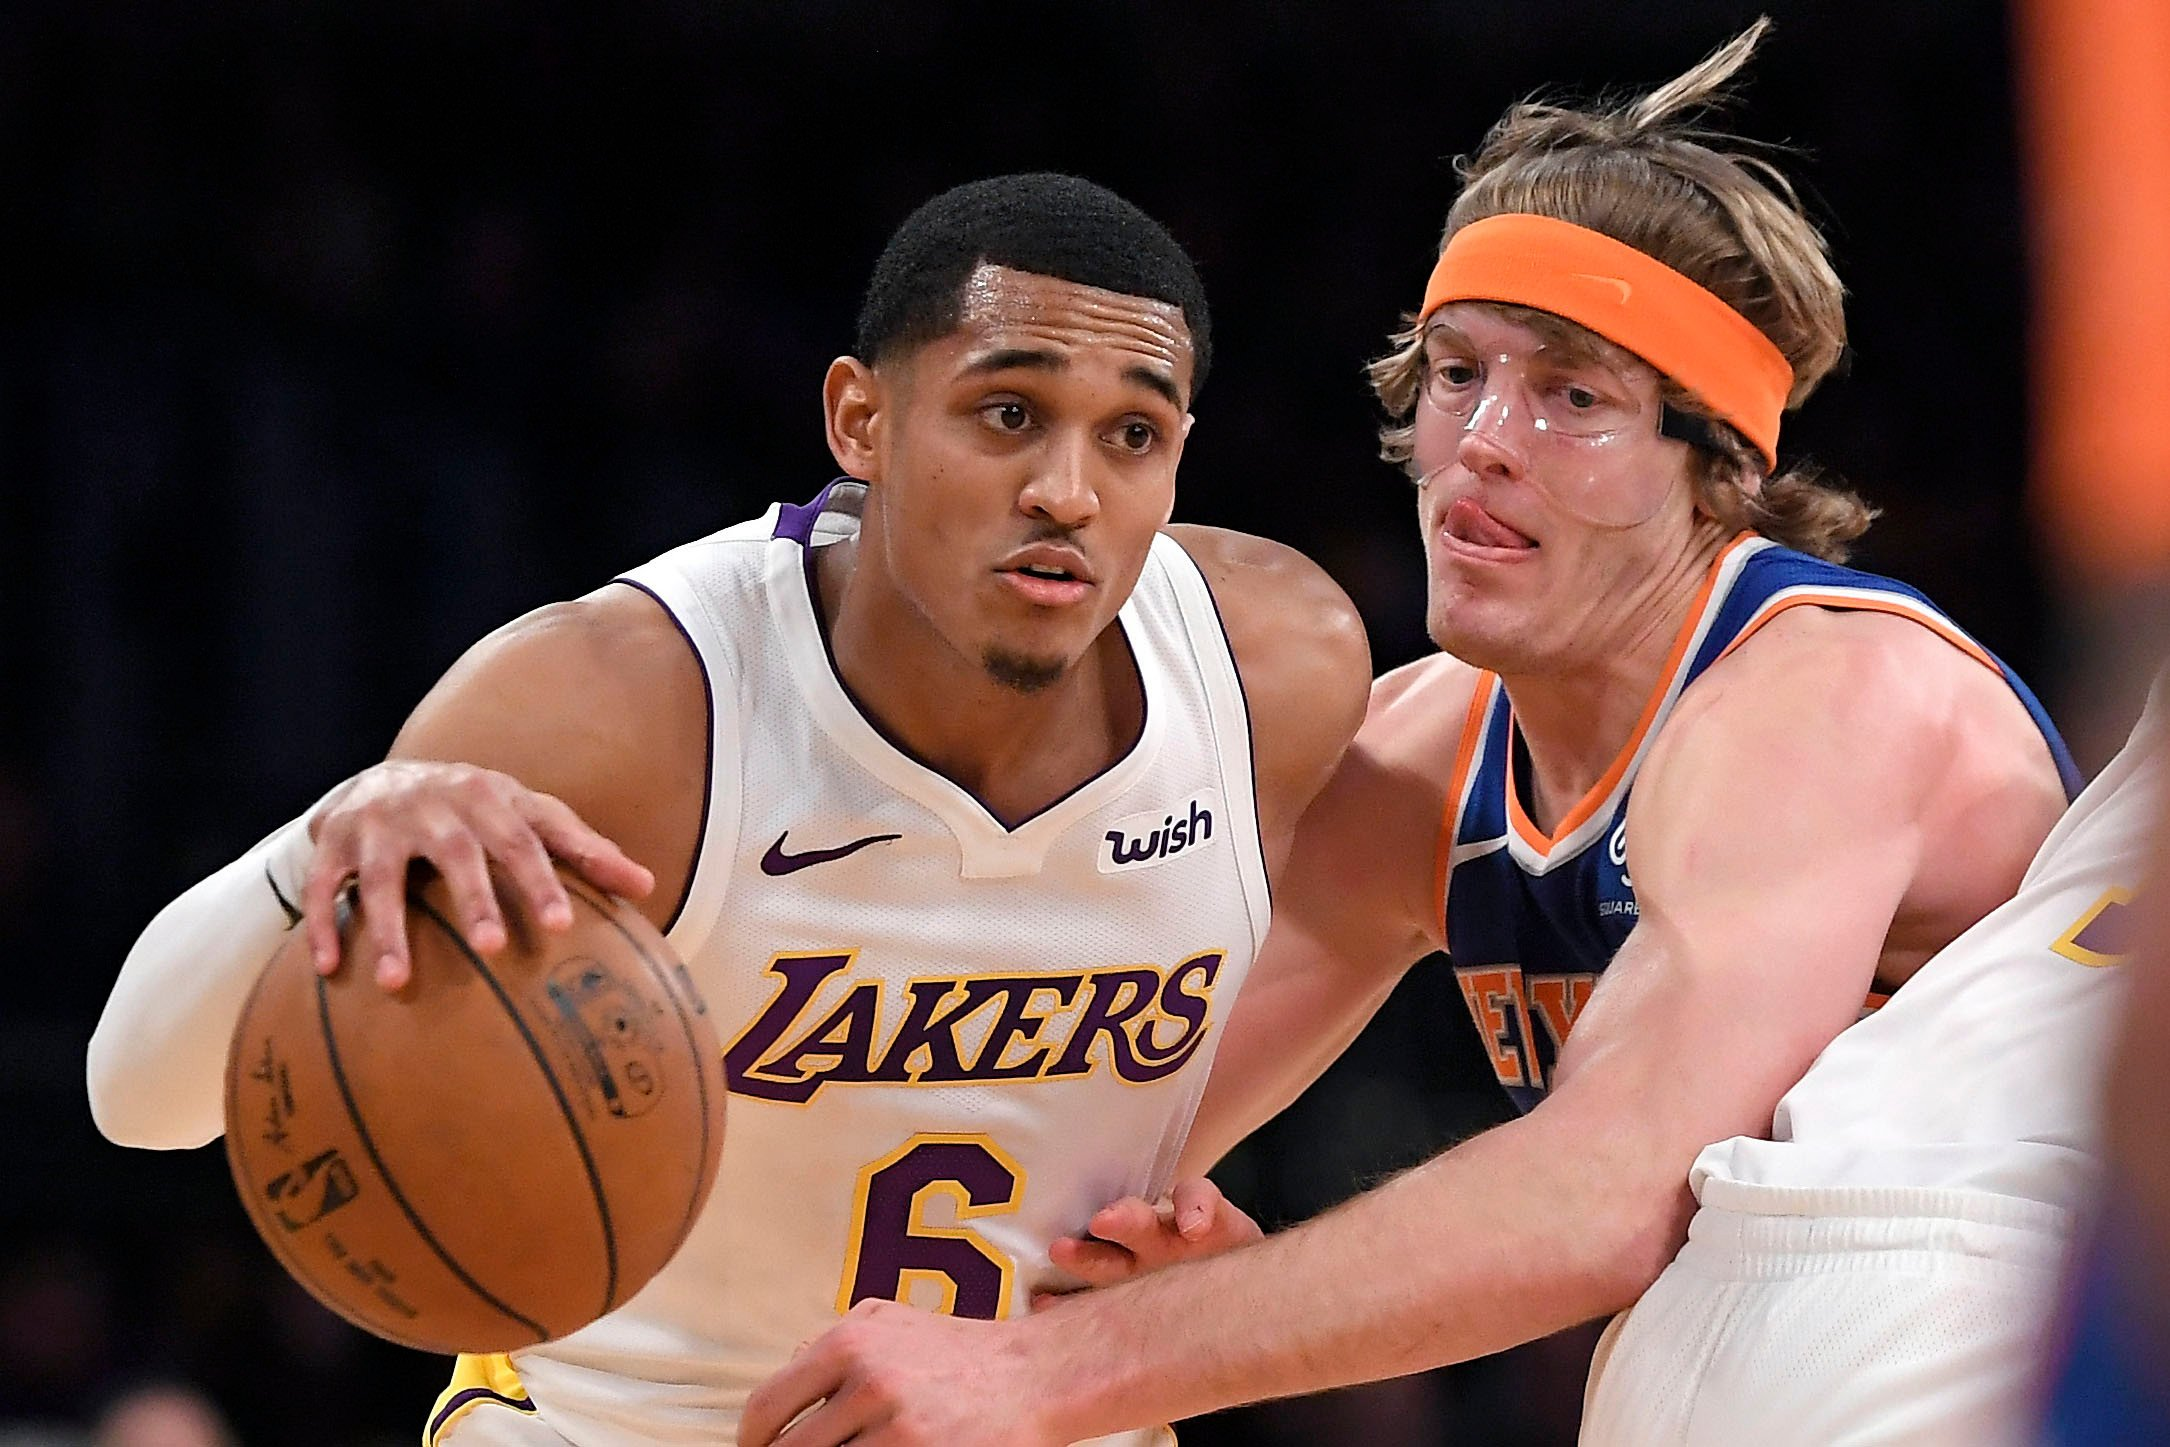 The Knicks want the face of their team to be masked